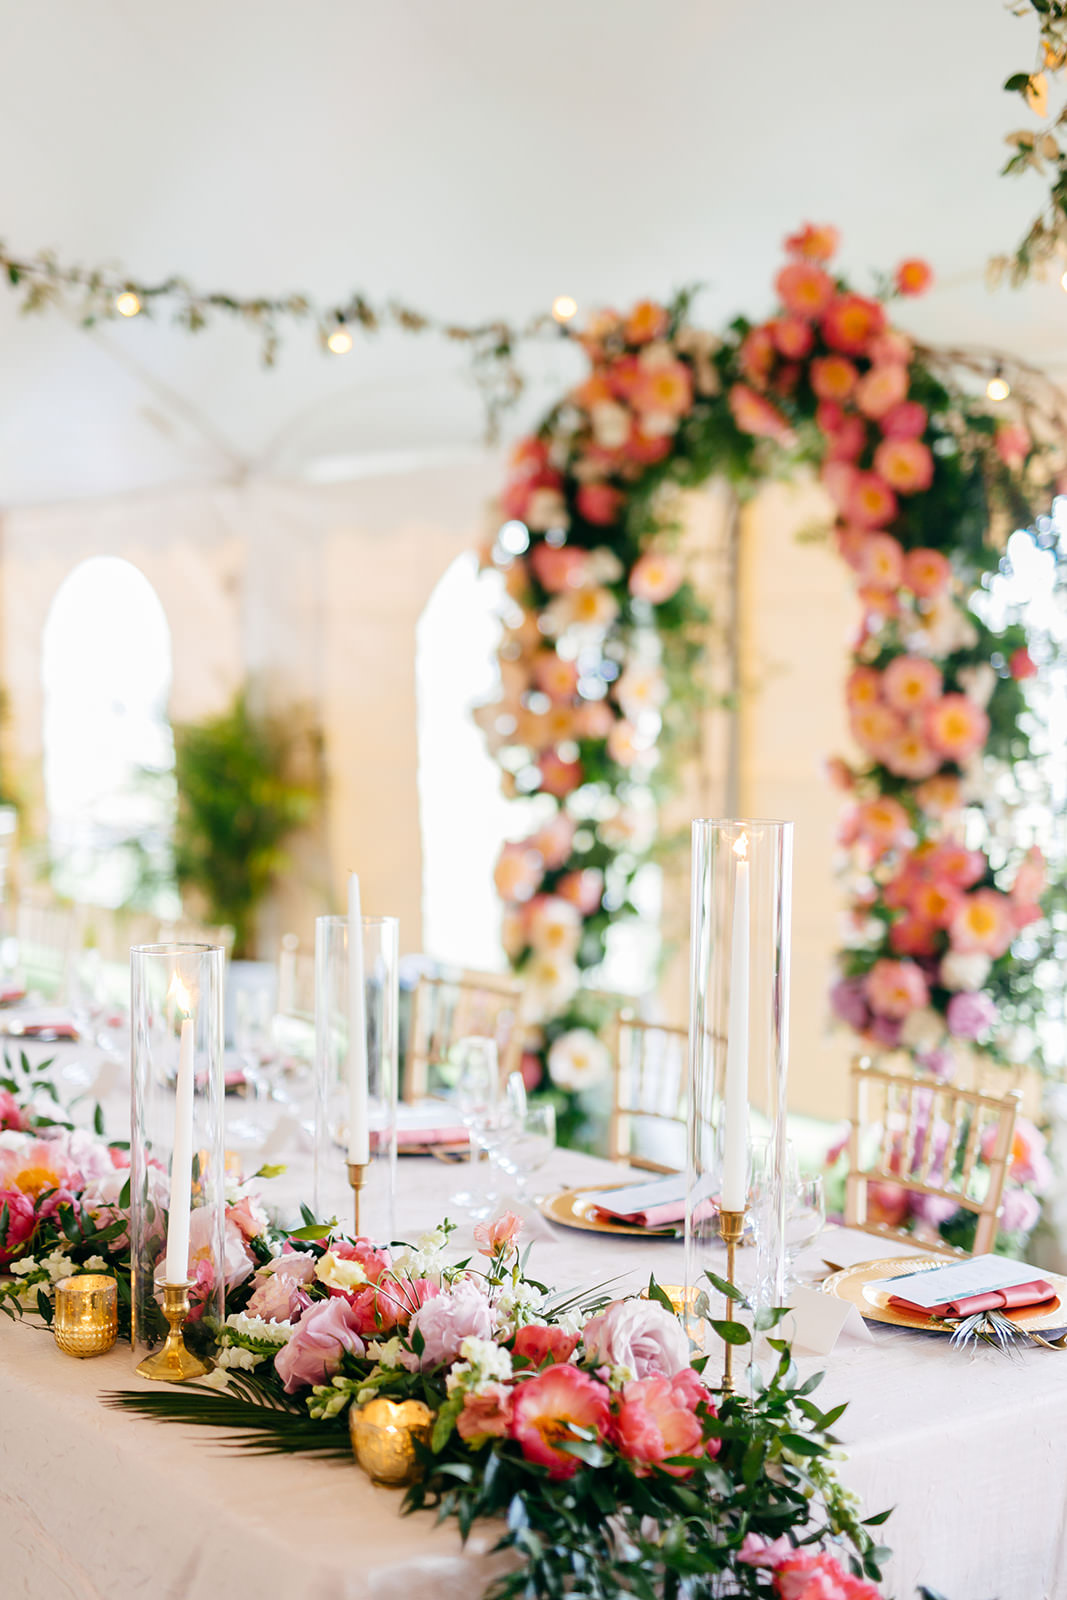 Elegant Tropical Wedding Reception Decor, Lush Pink and Coral with Greenery Floral Table Runner, Gold Candlesticks   Tampa Bay Wedding Planner NK Weddings